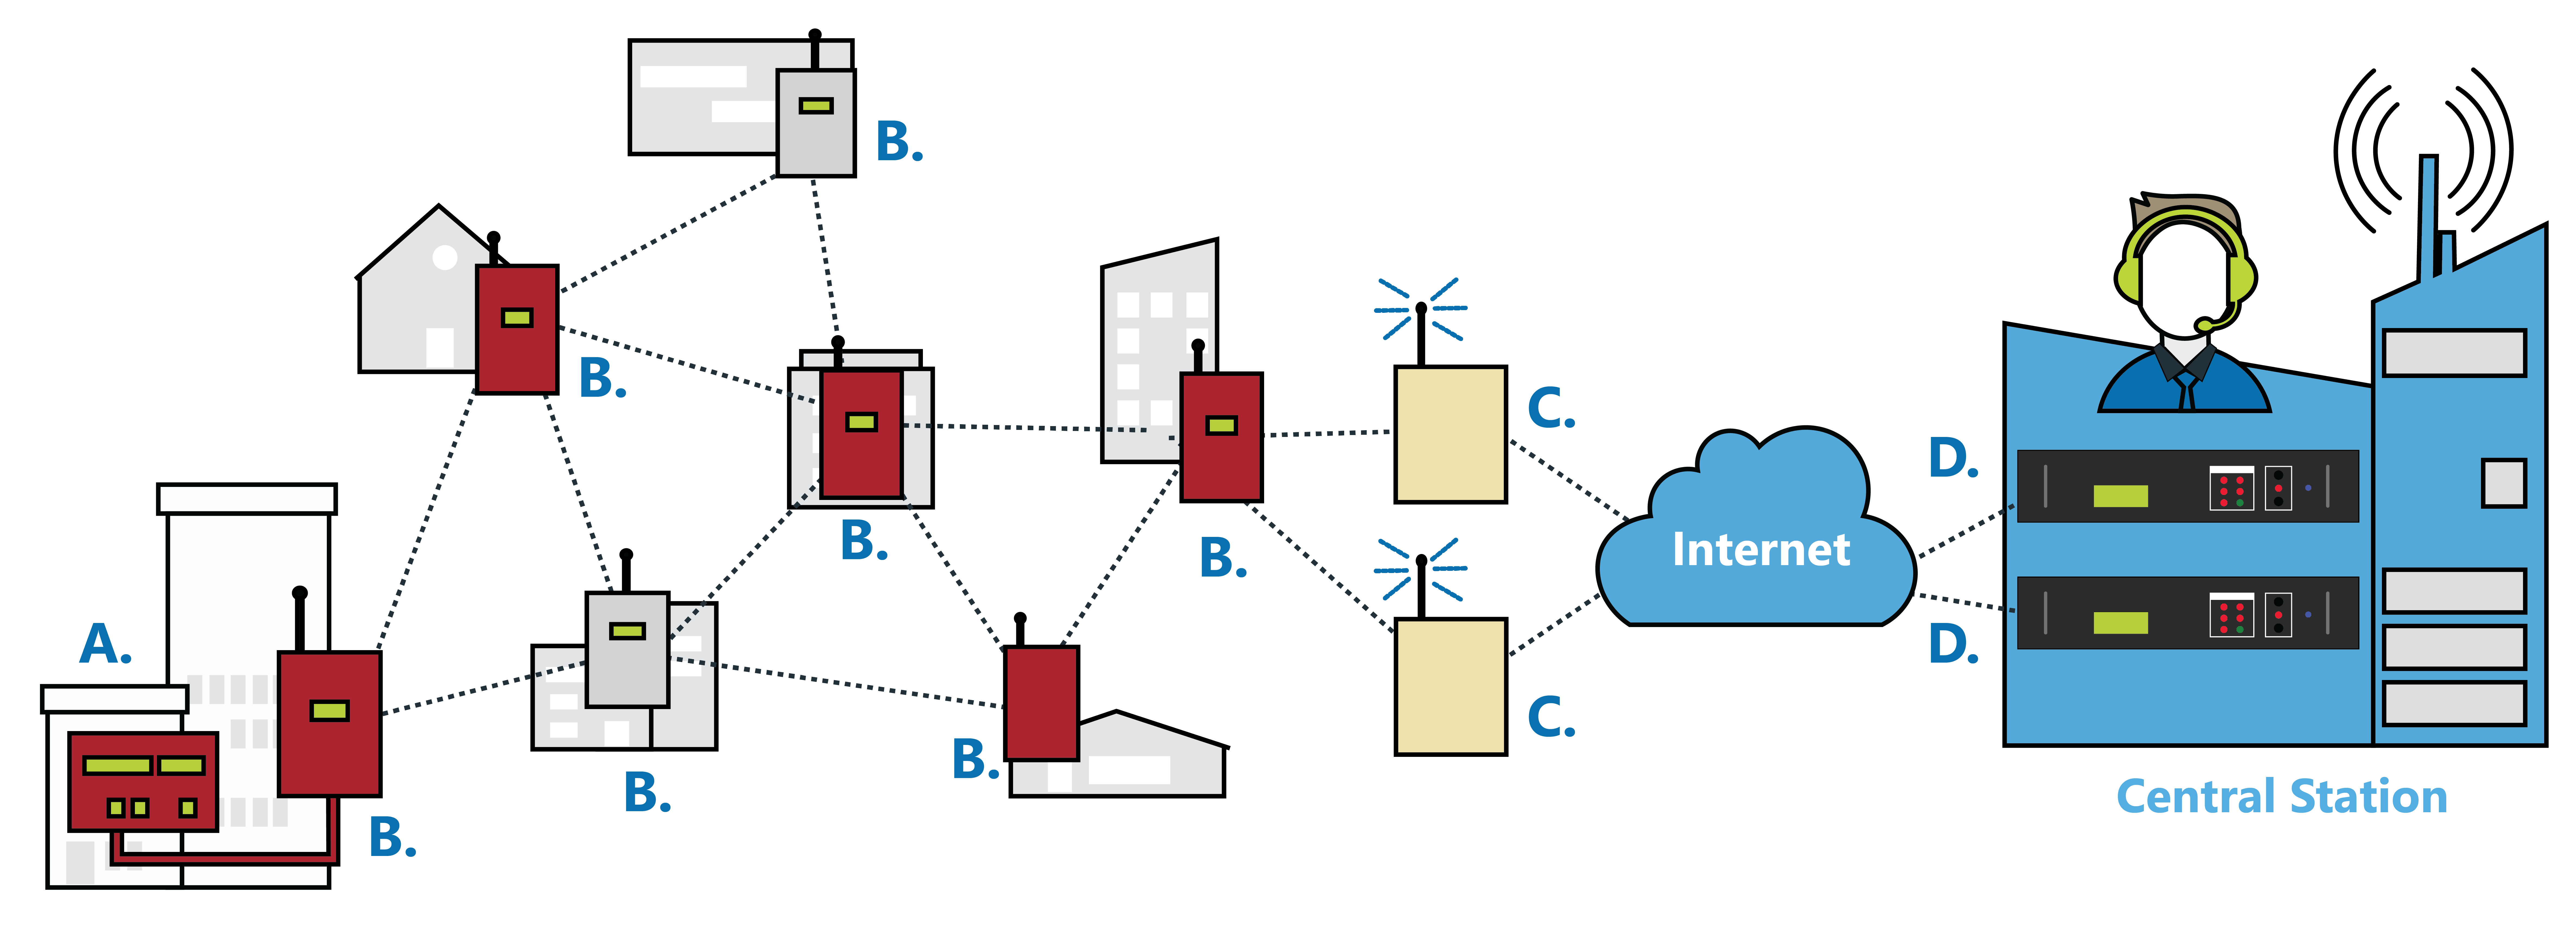 aes private wireless network-01